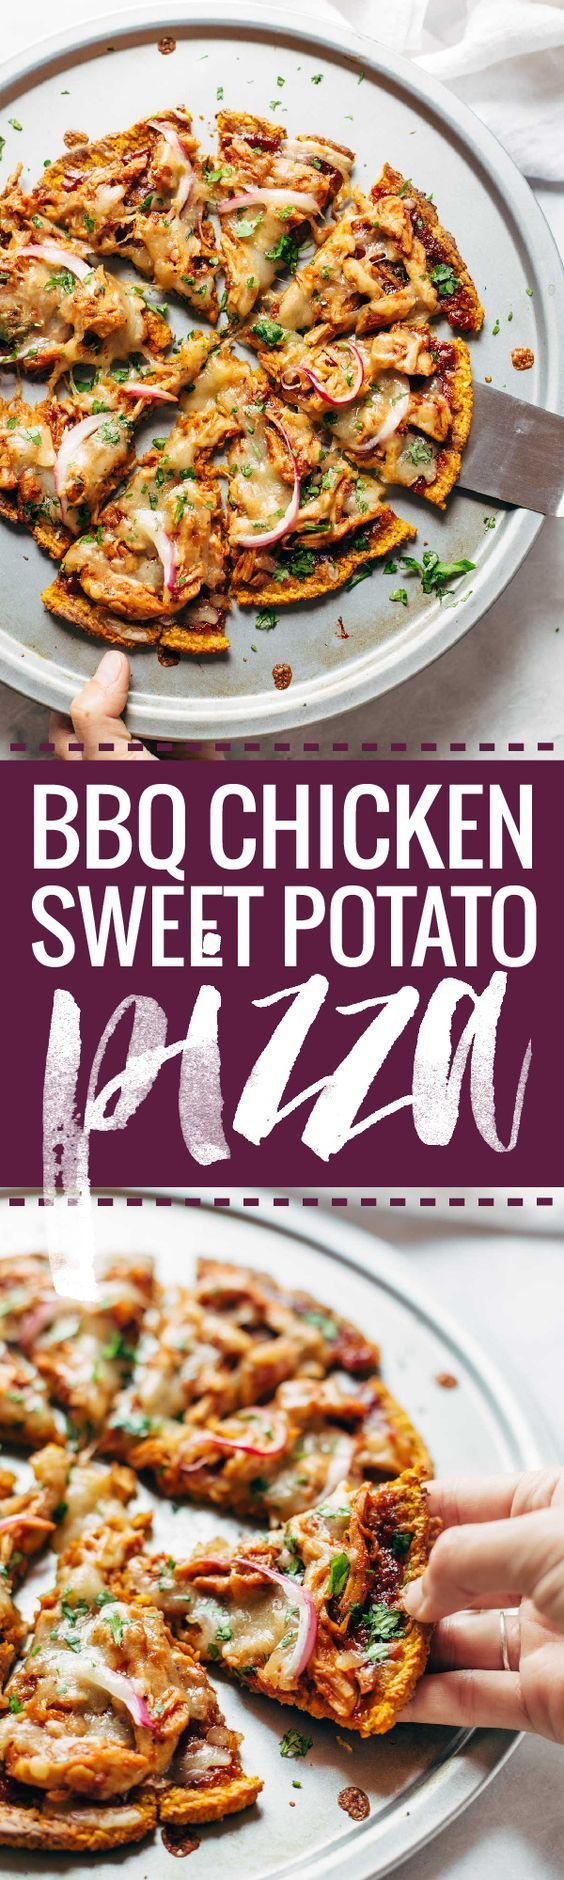 BBQ Chicken Sweet Potato Pizza - made on a 3-ingredient sweet potato crust! easy, delicious, real food pizza. | http://pinchofyum.com